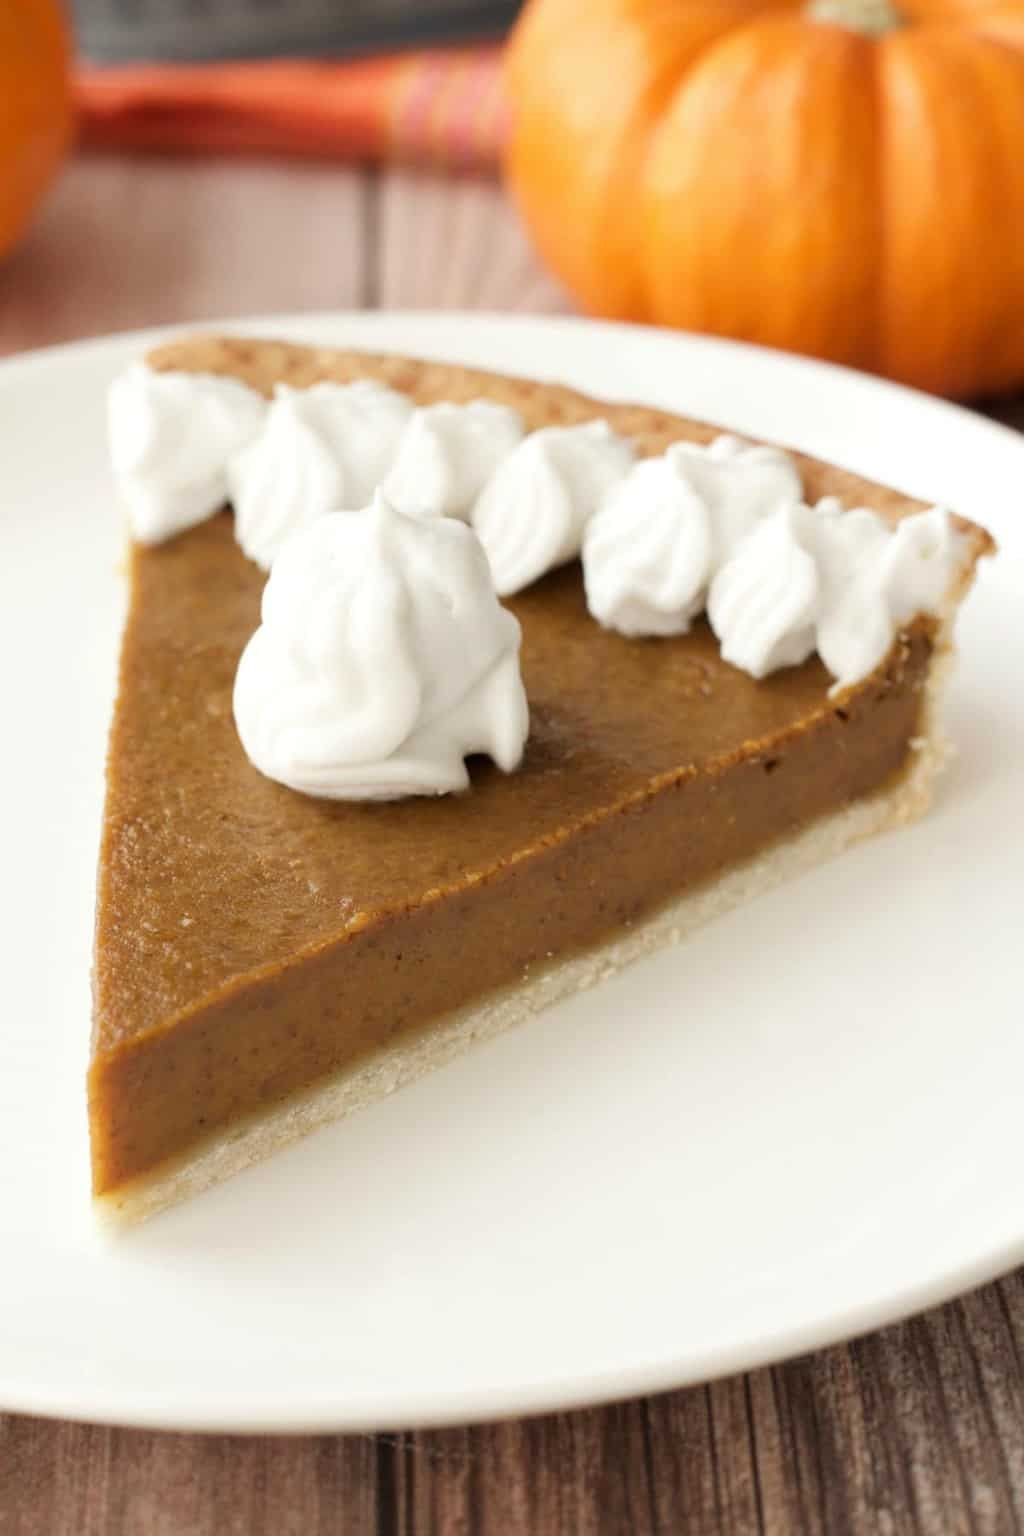 A slice of vegan pumpkin pie topped with whipped cream on a white plate.